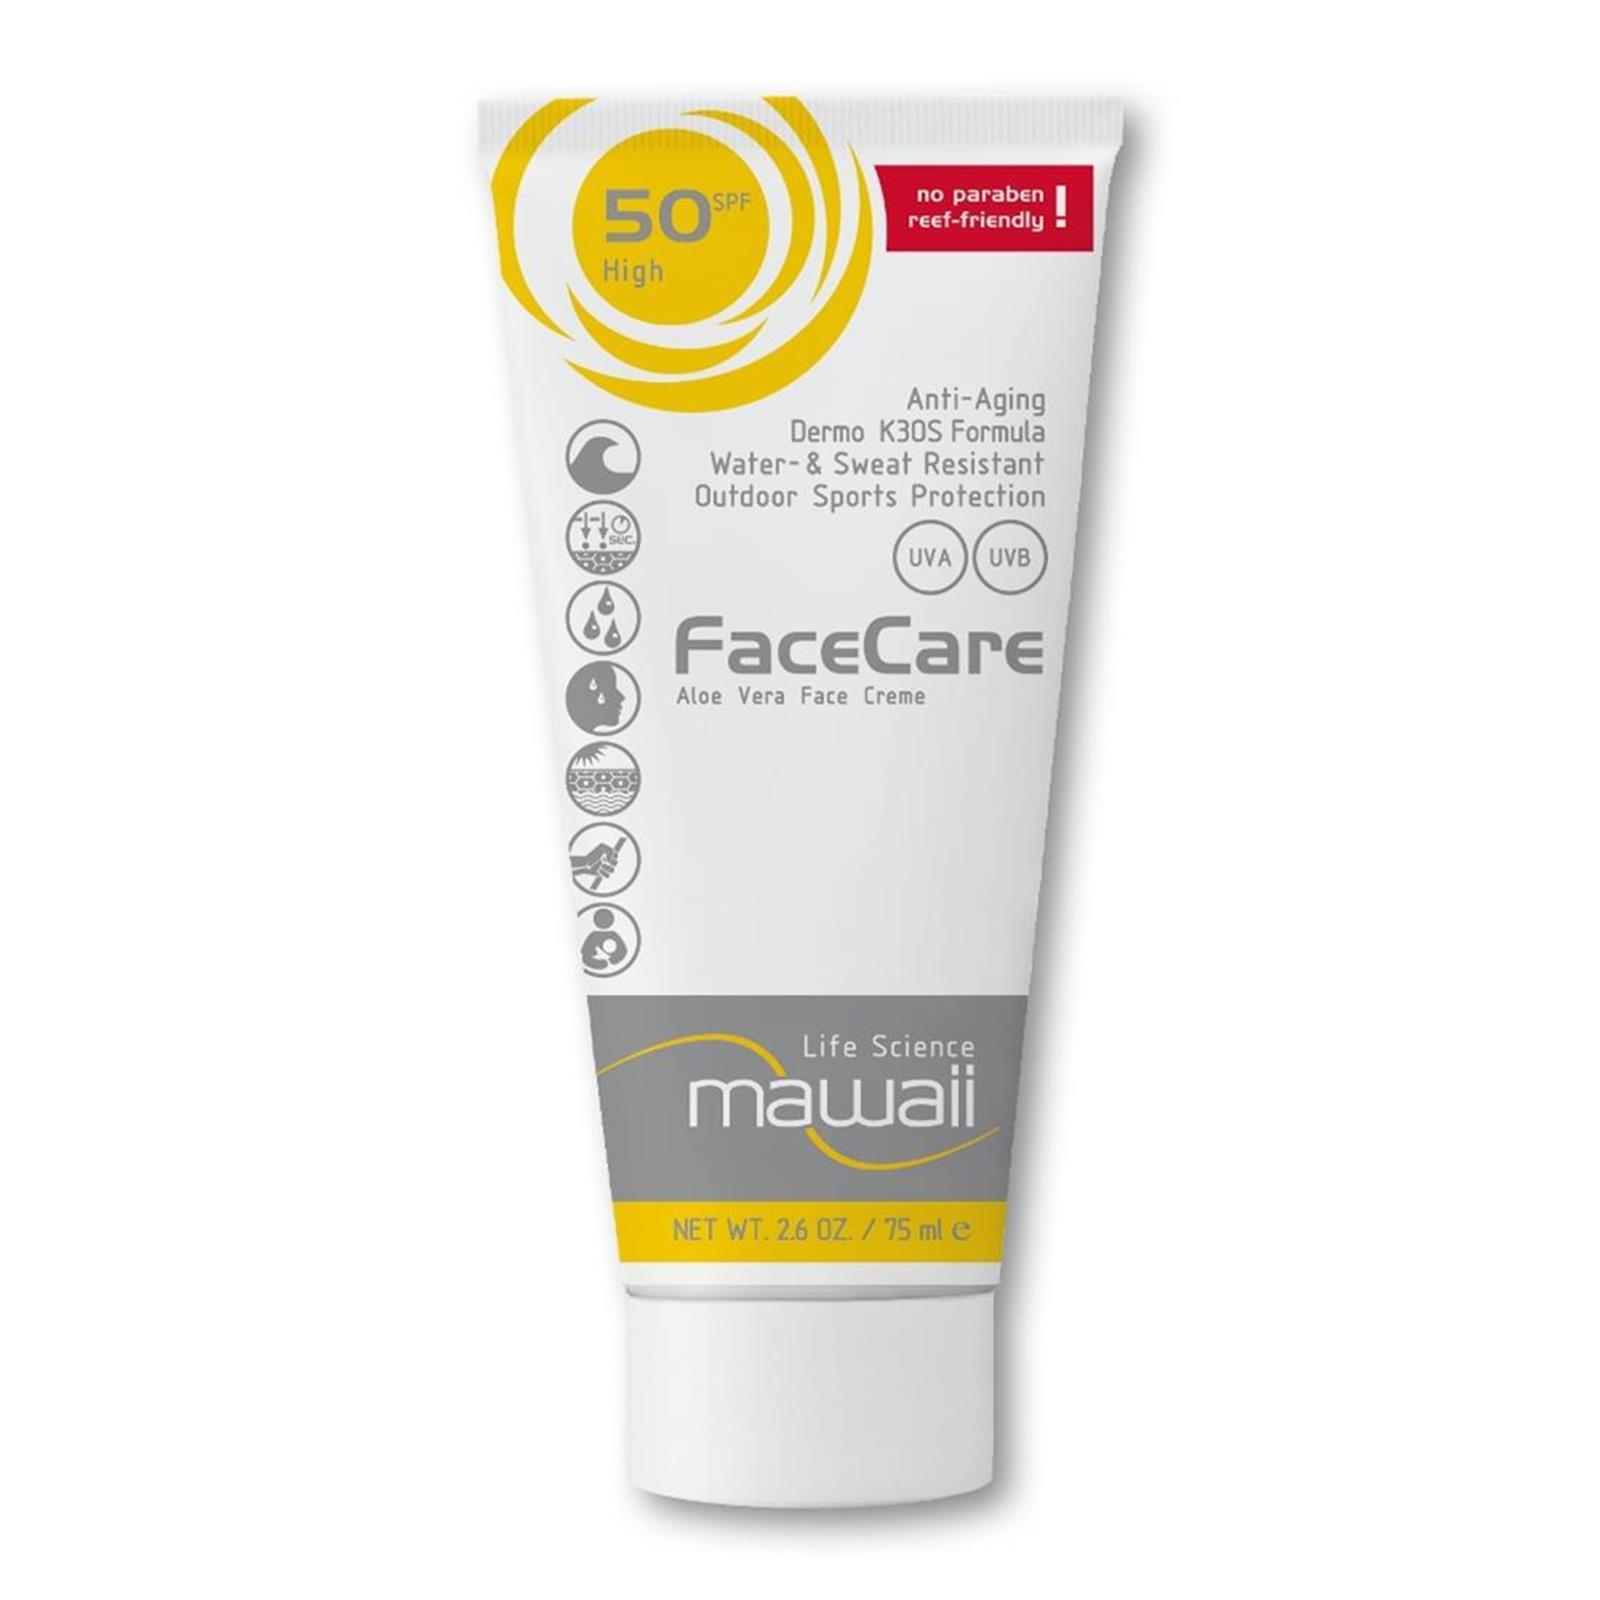 mawaii FaceCare SPF 50  K3OS Formula 75ml